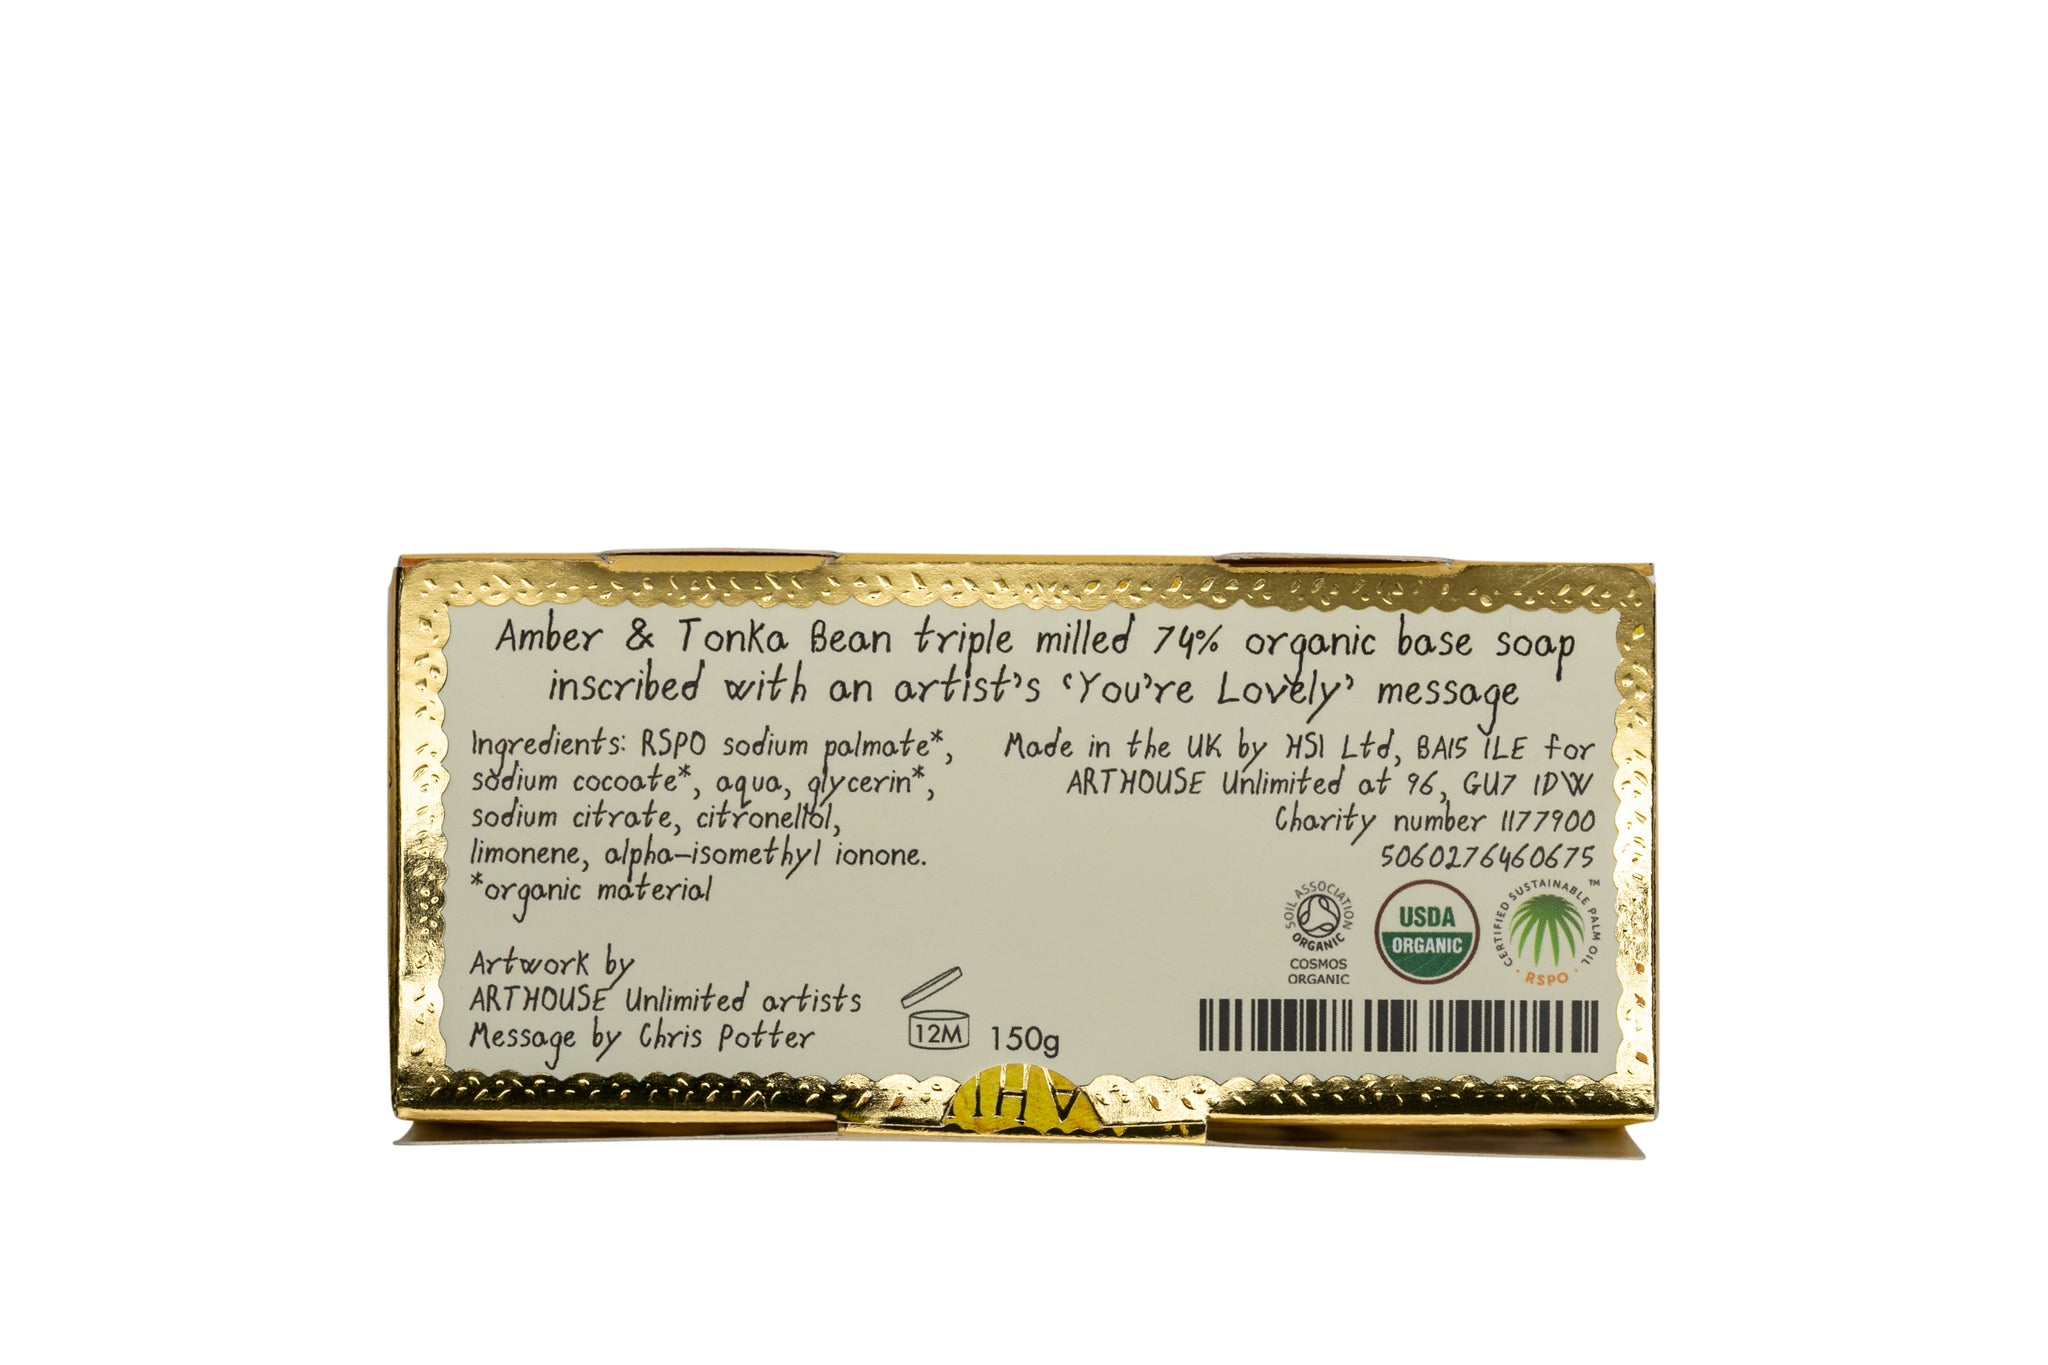 'You're Lovely' - Amber & Tonka Soap